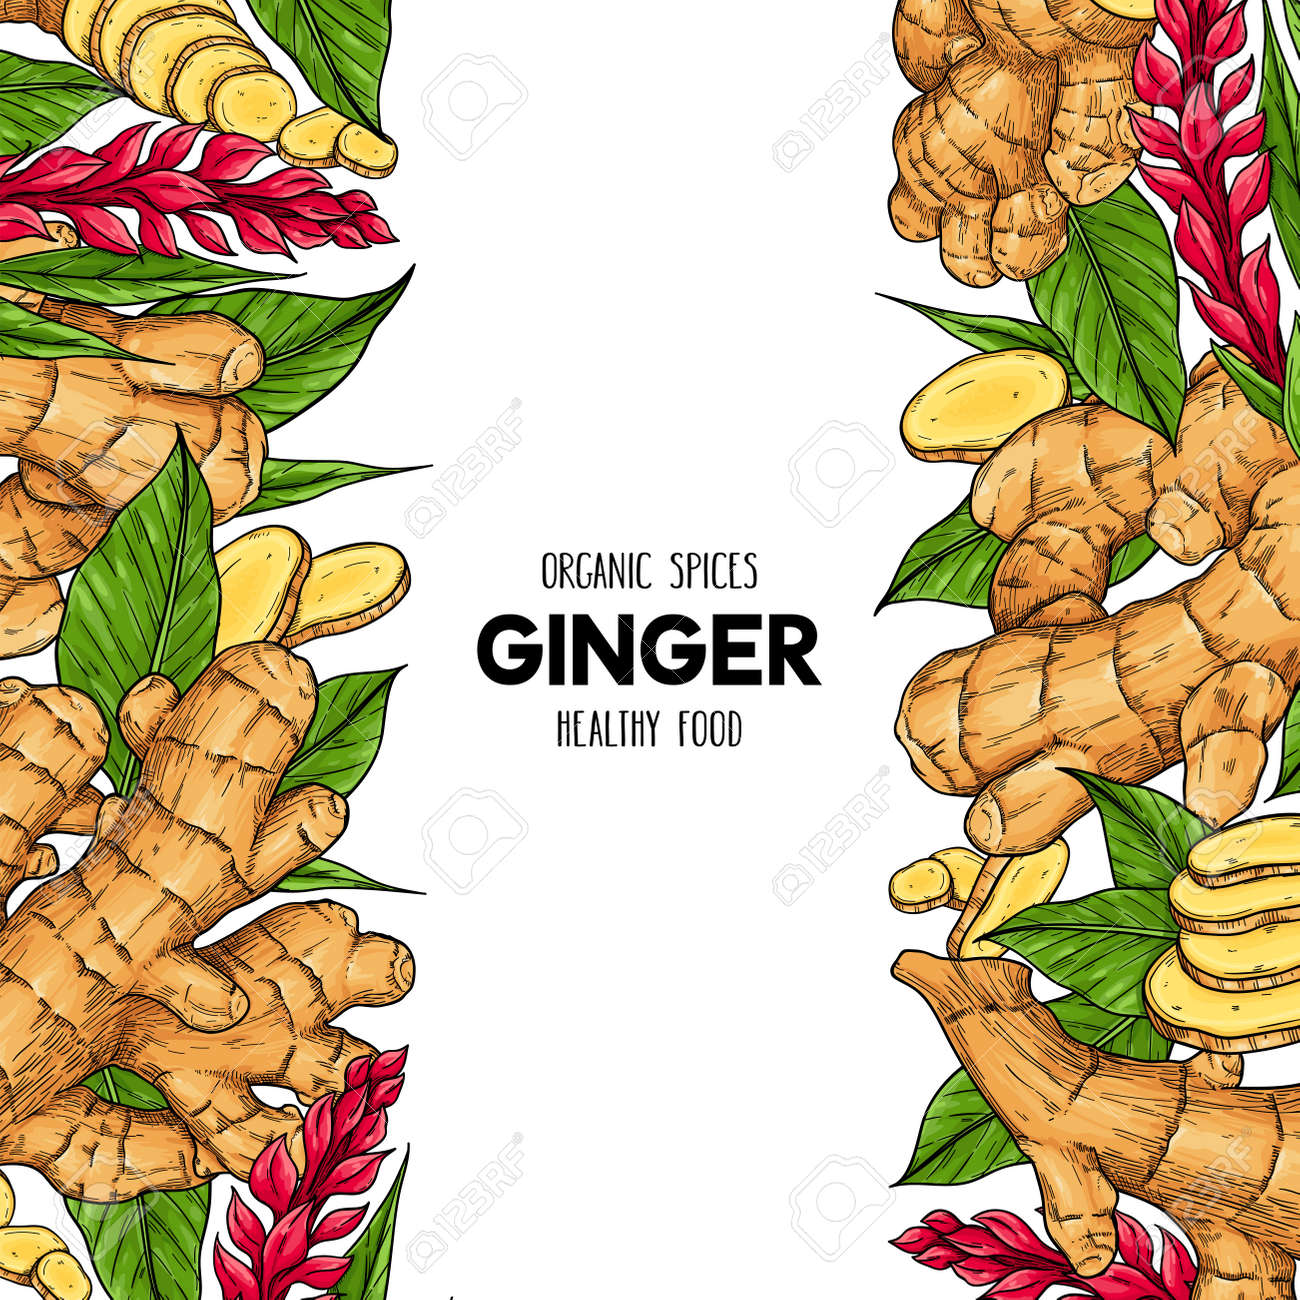 Vector hand drawn frame with organic ginger root, slices pieces, leaves and flower. Natural spices illustration - 156657825